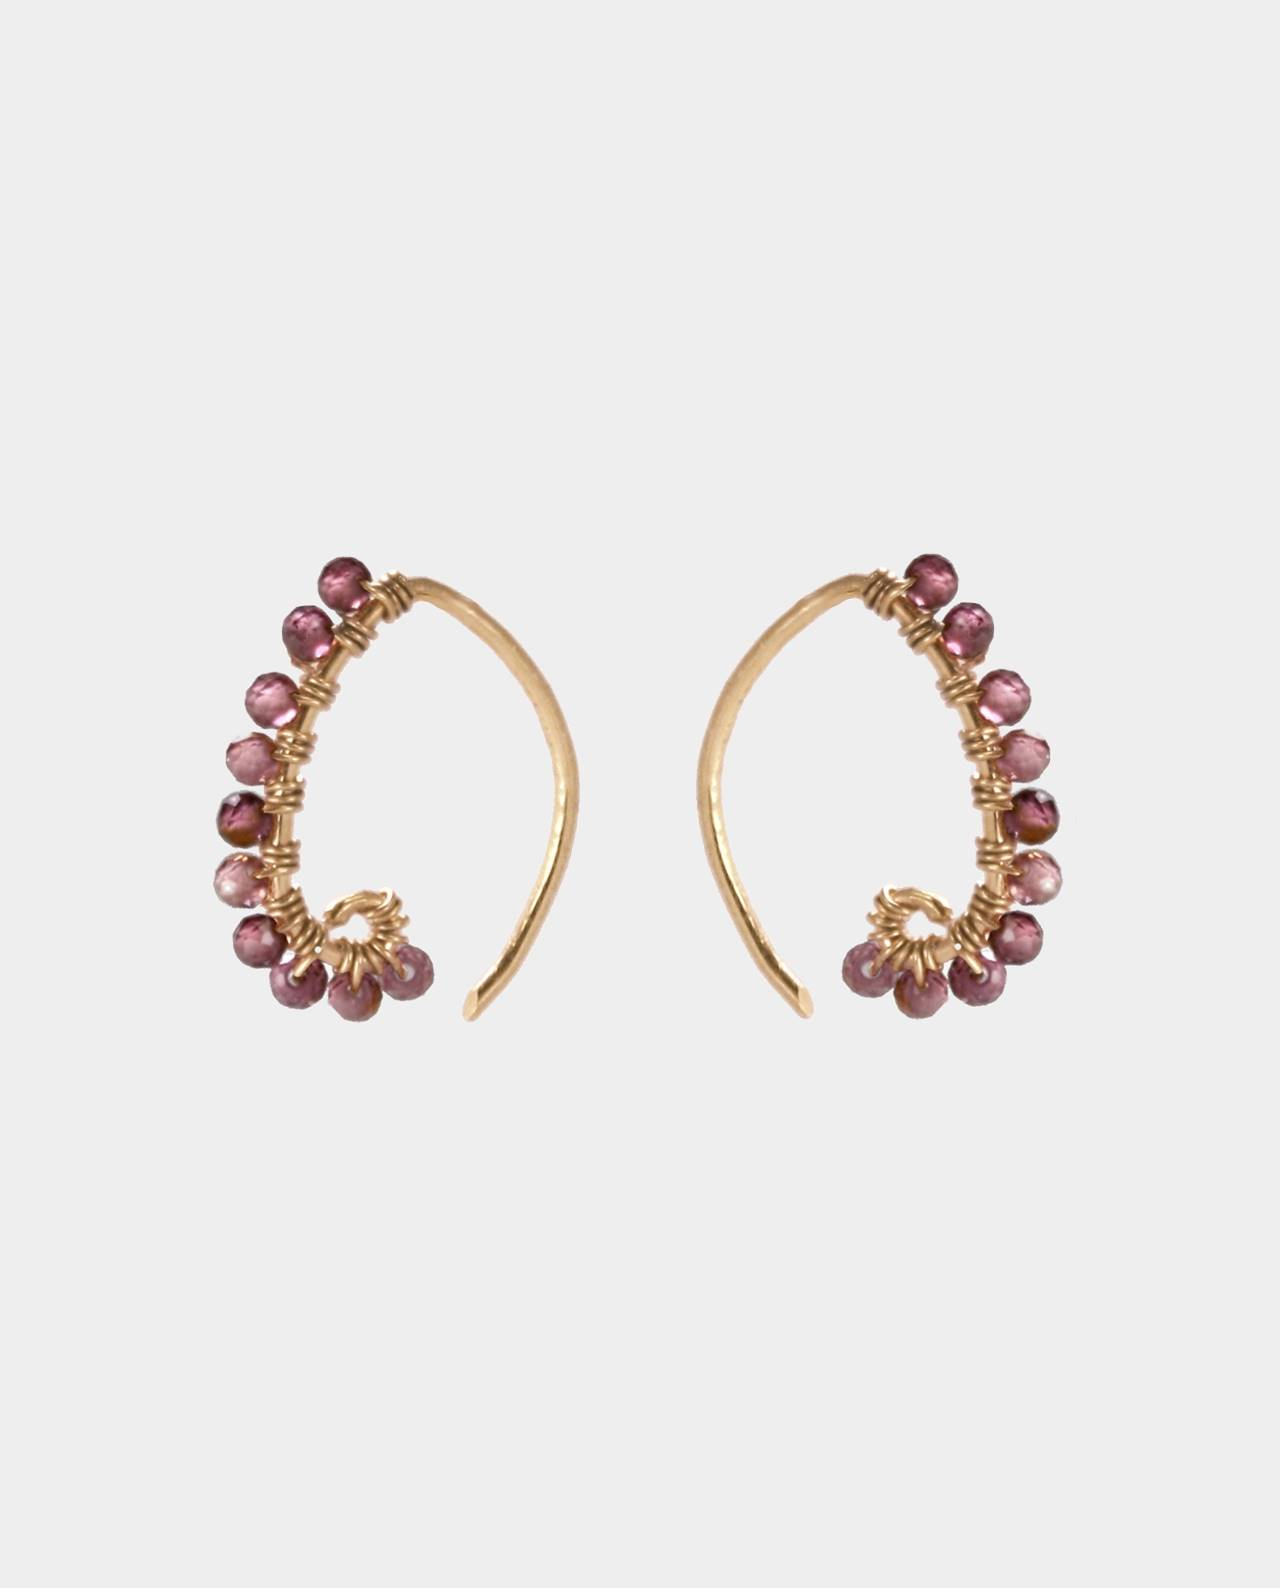 Small curved ear hooks plated with 18 carat gold and with bevelled garnets in a line